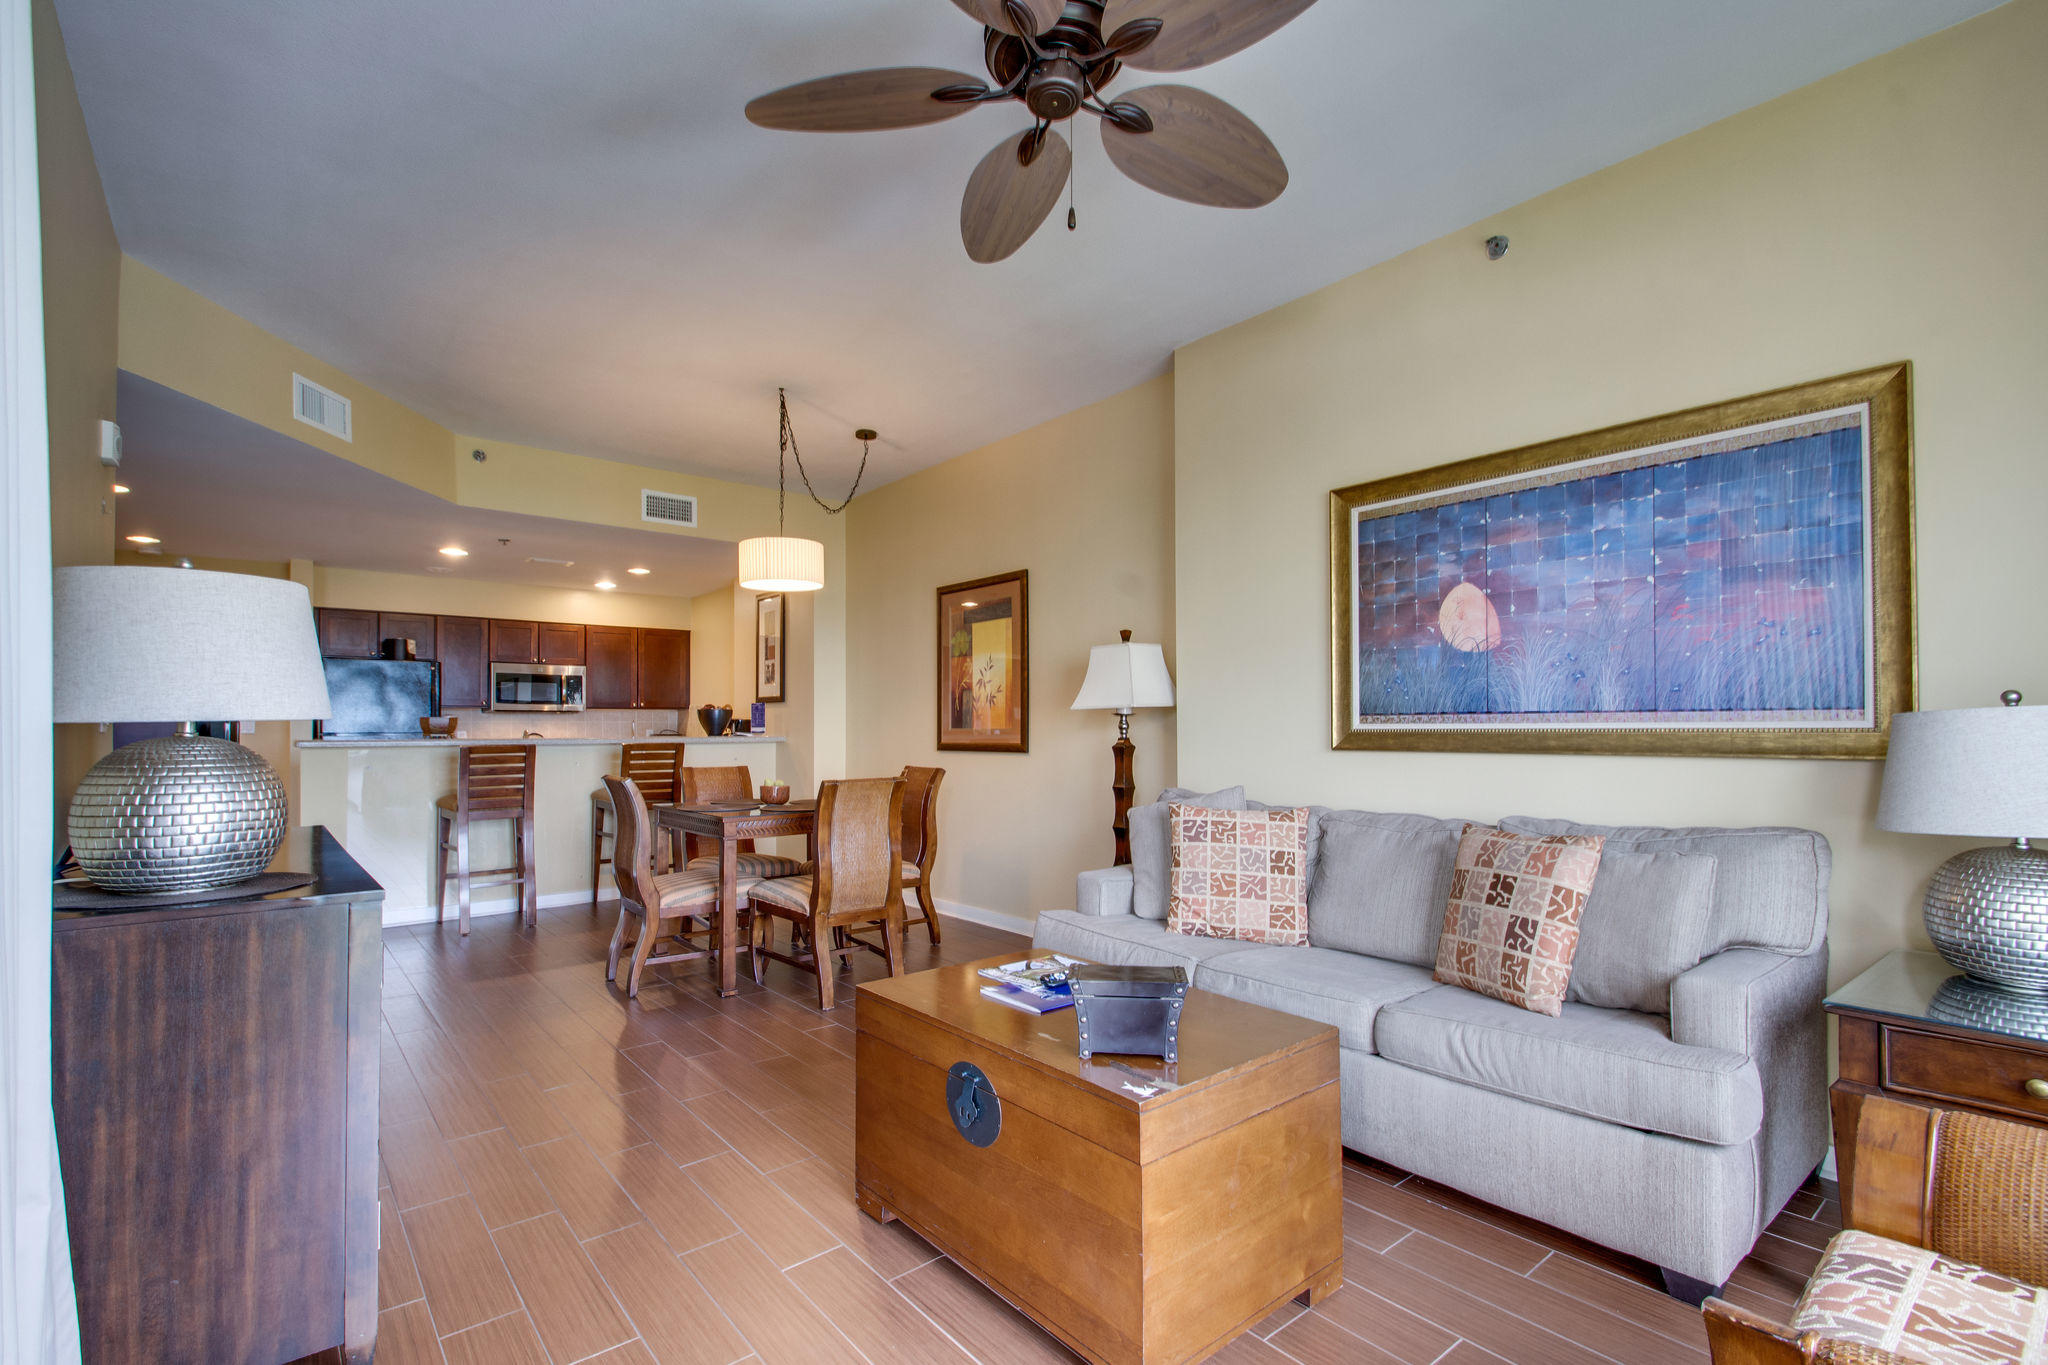 Fully furnished and rental-ready 4th-floor condo with sunrise Gulf views. Steps away from Luau's lag